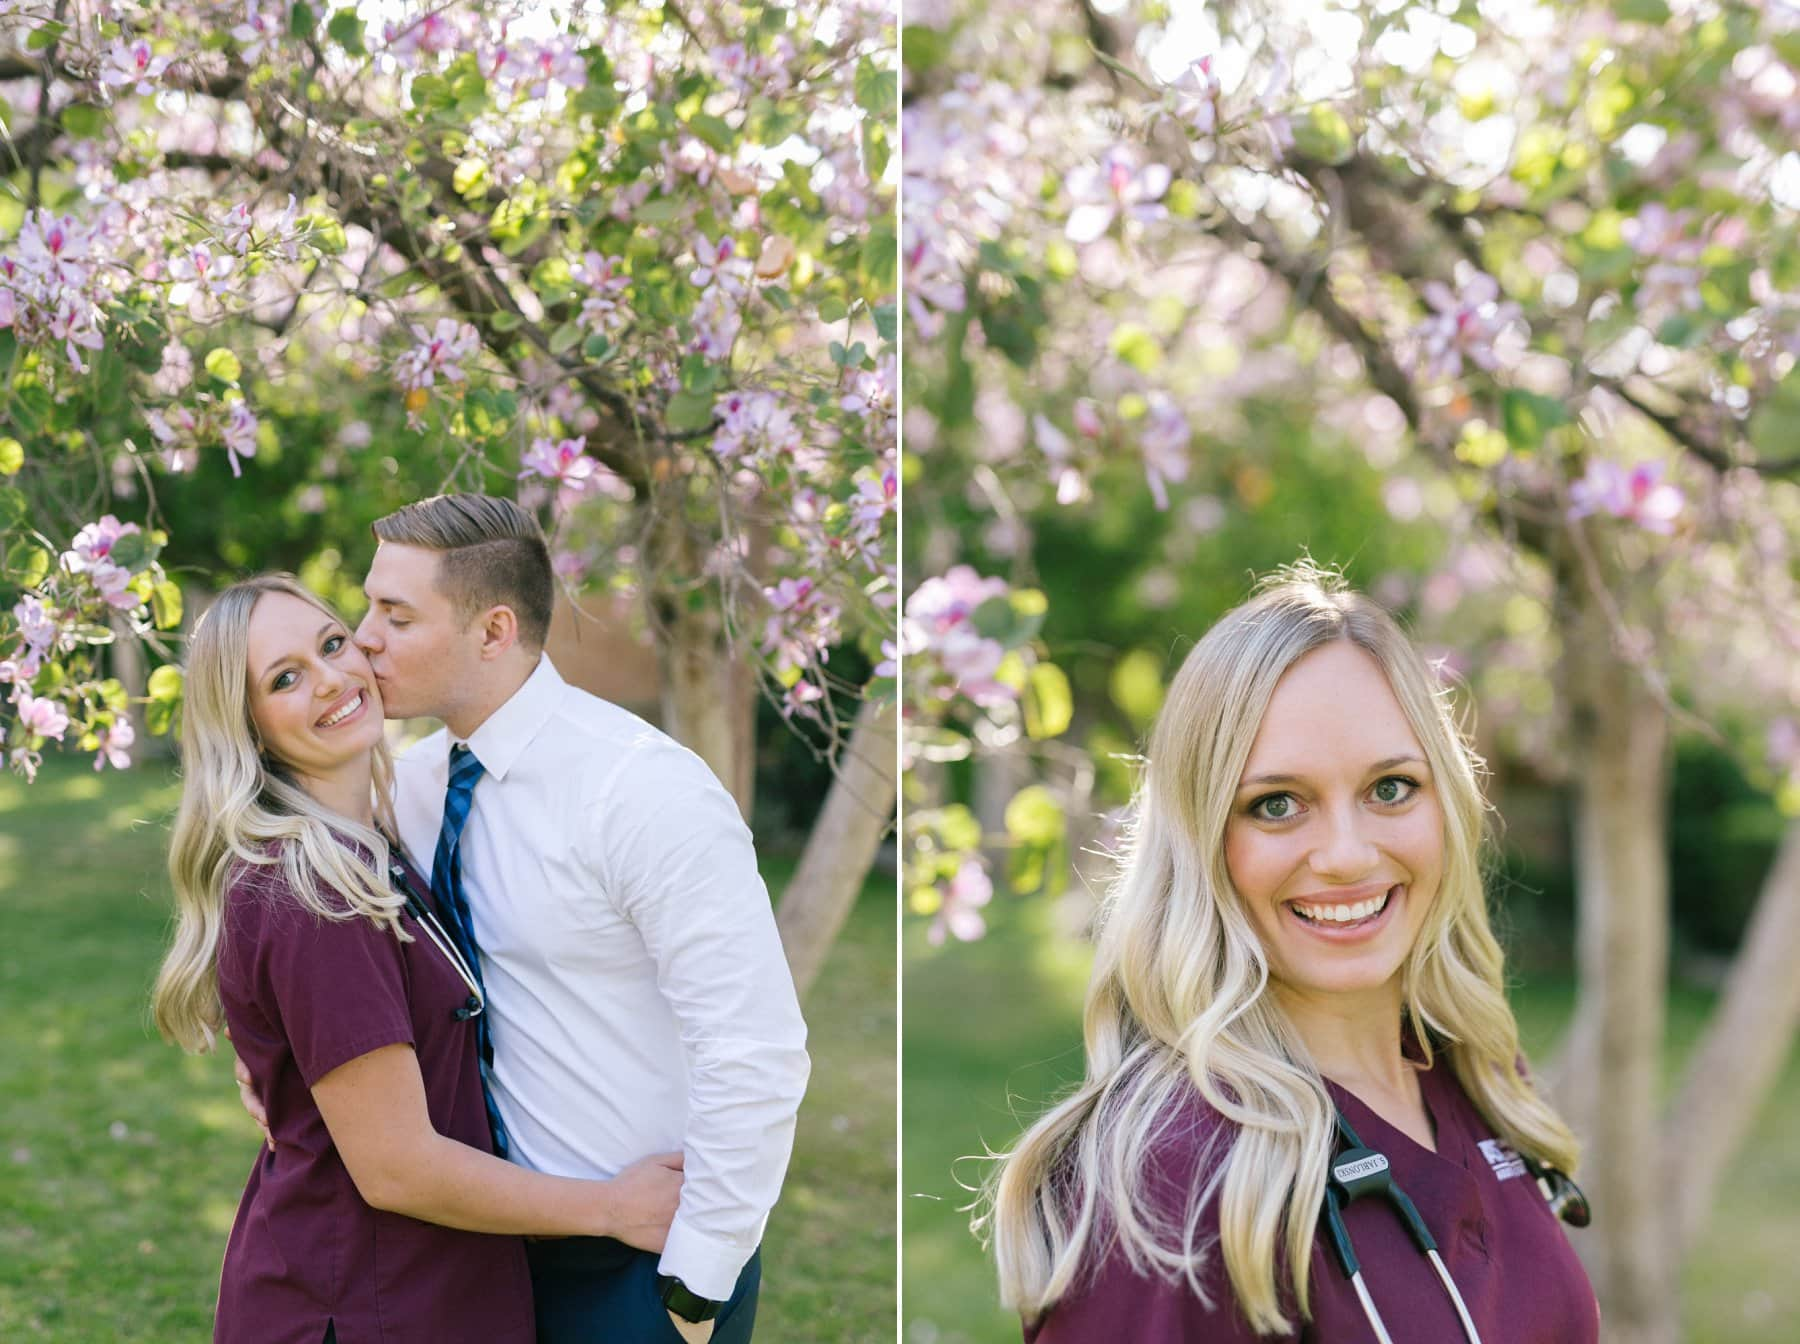 ASU nurse graduate engagement photos